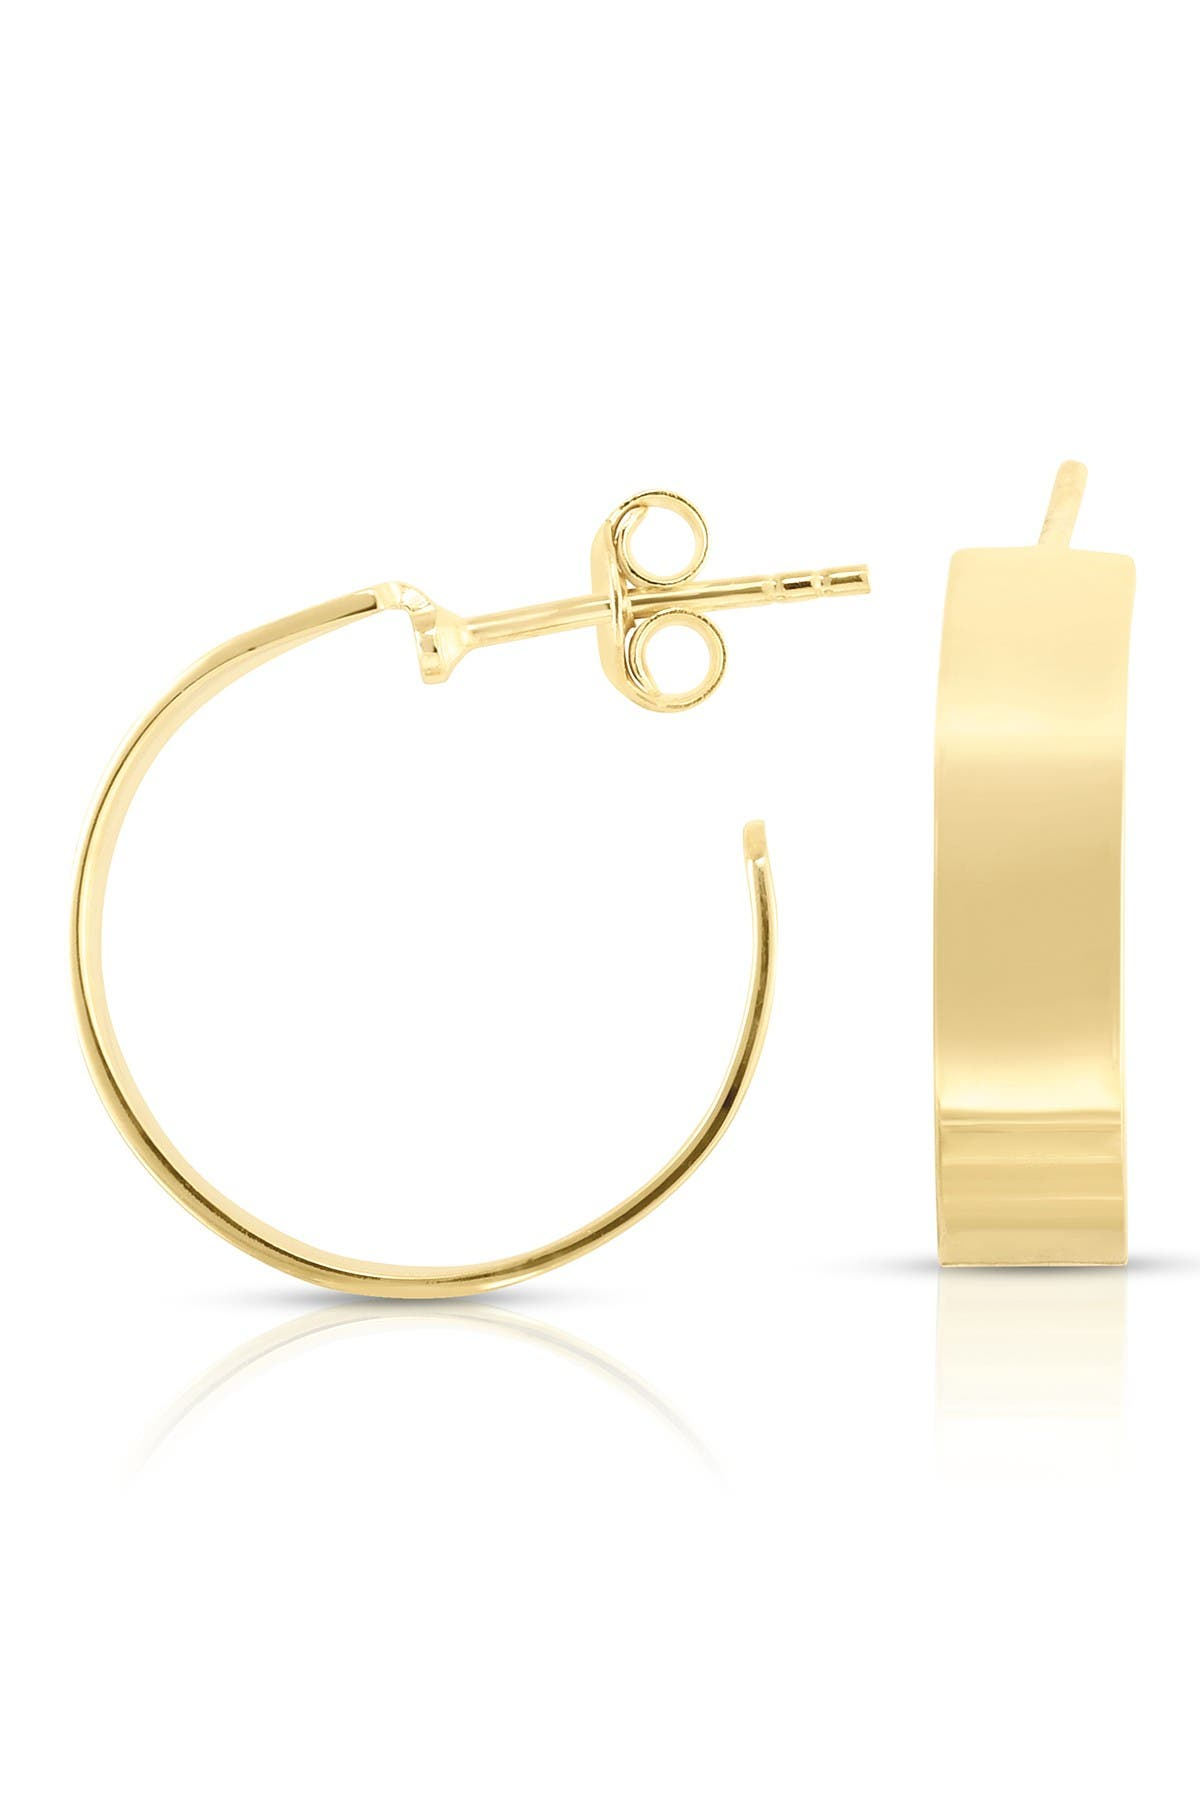 Image of Sphera Milano 14K Yellow Gold Plated Sterling Silver Small Wide 15mm Hoop Earrings